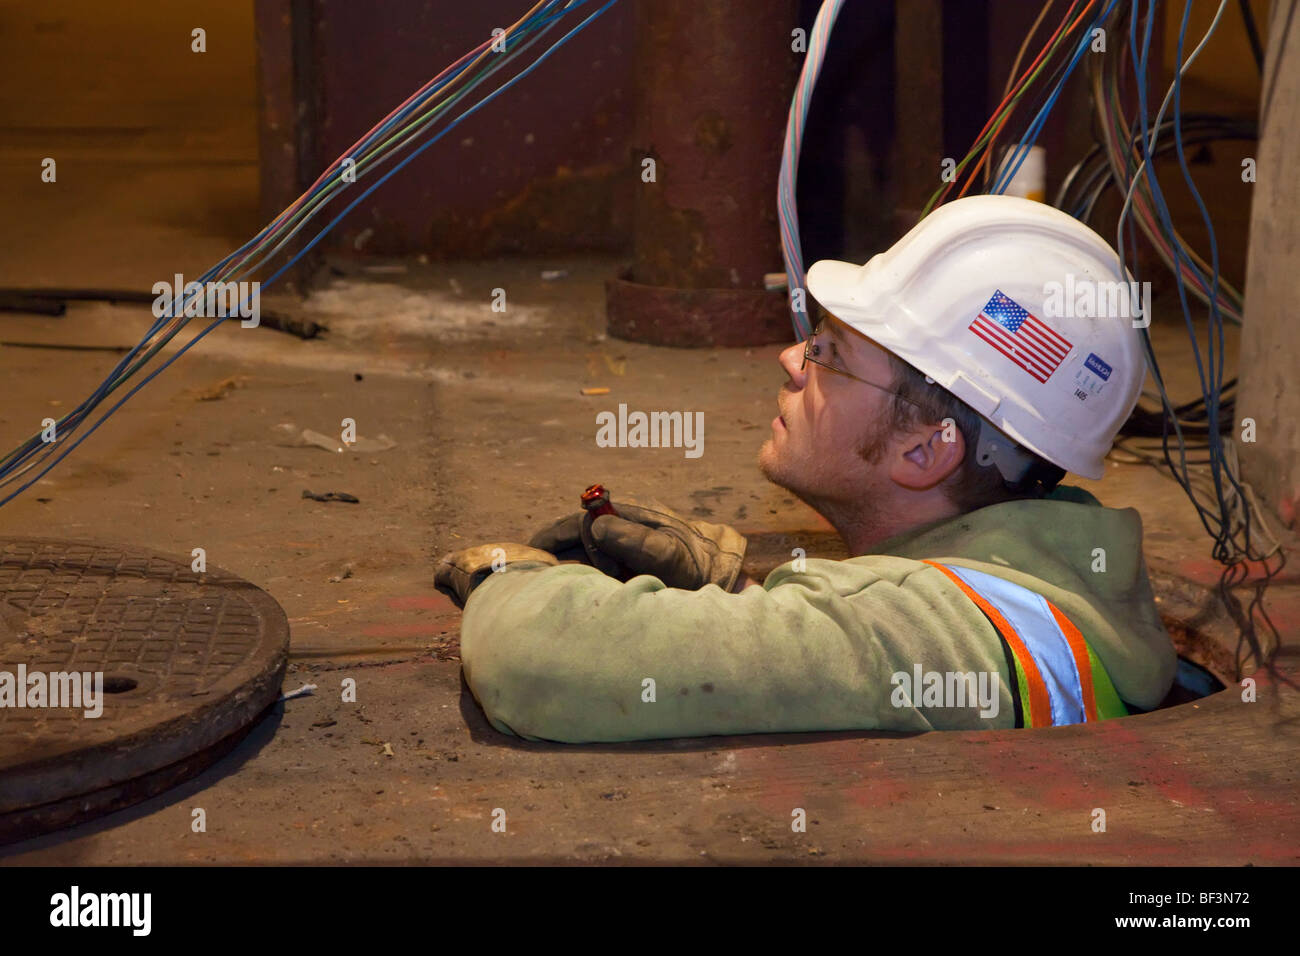 Chicago, Illinois - A public employee works on electrical wiring in a manhole. - Stock Image